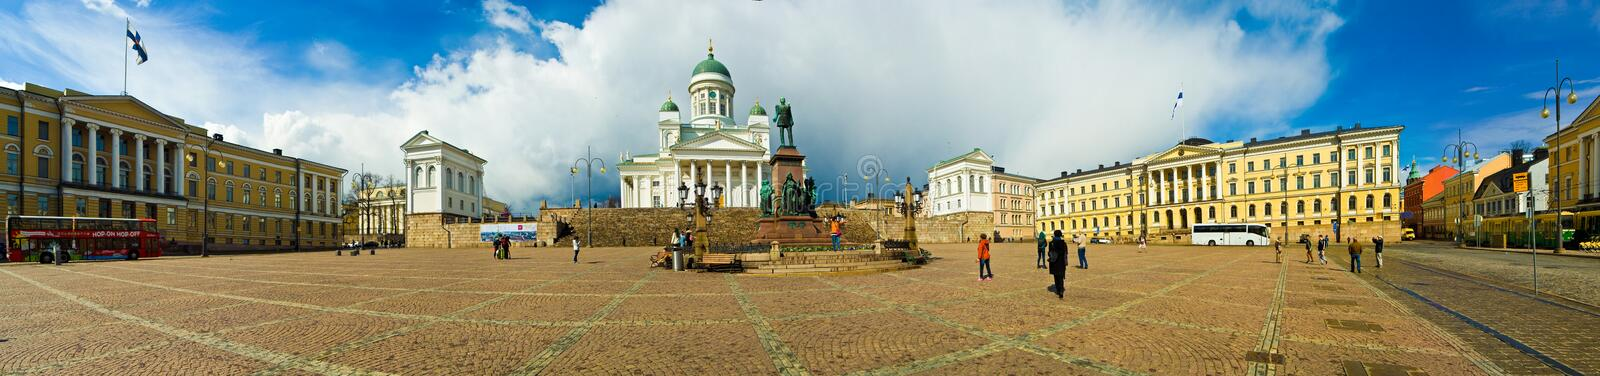 Helsinki, Finland. Helsinki Cathedral and Senate Square, Helsinki, Finland stock photography